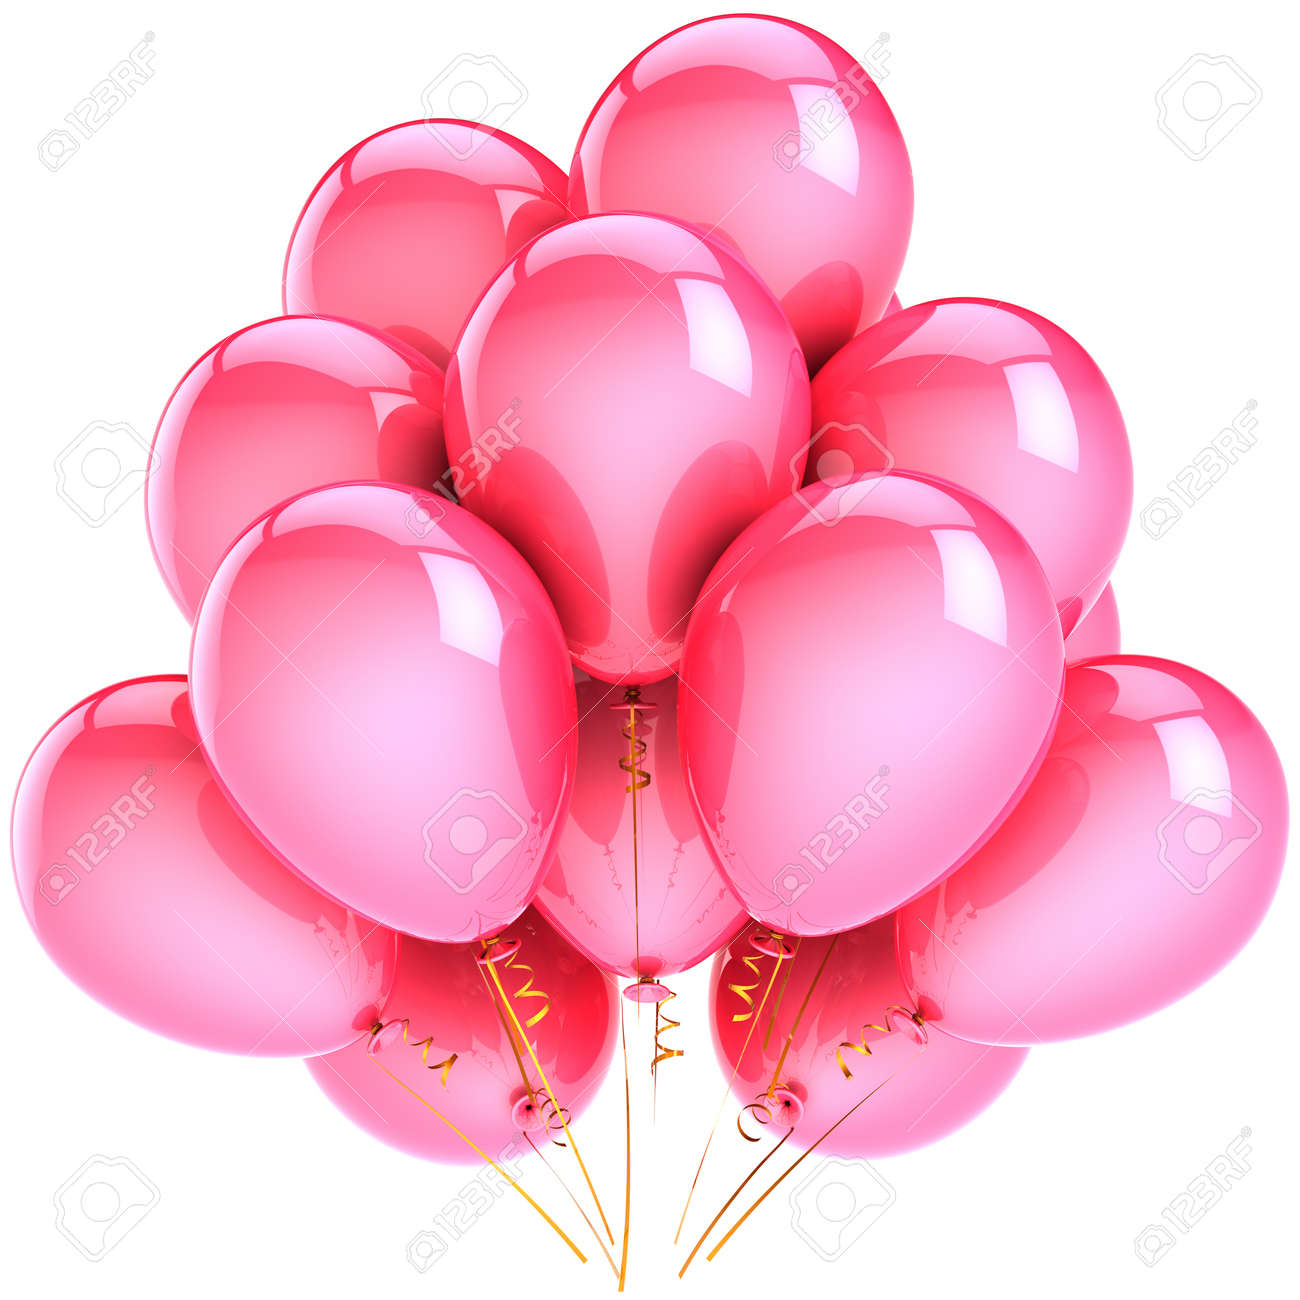 Balloons Party Decoration Colorful Pink Romantic Happiness Holiday Abstract Birthday Anniversary Celebration Concept